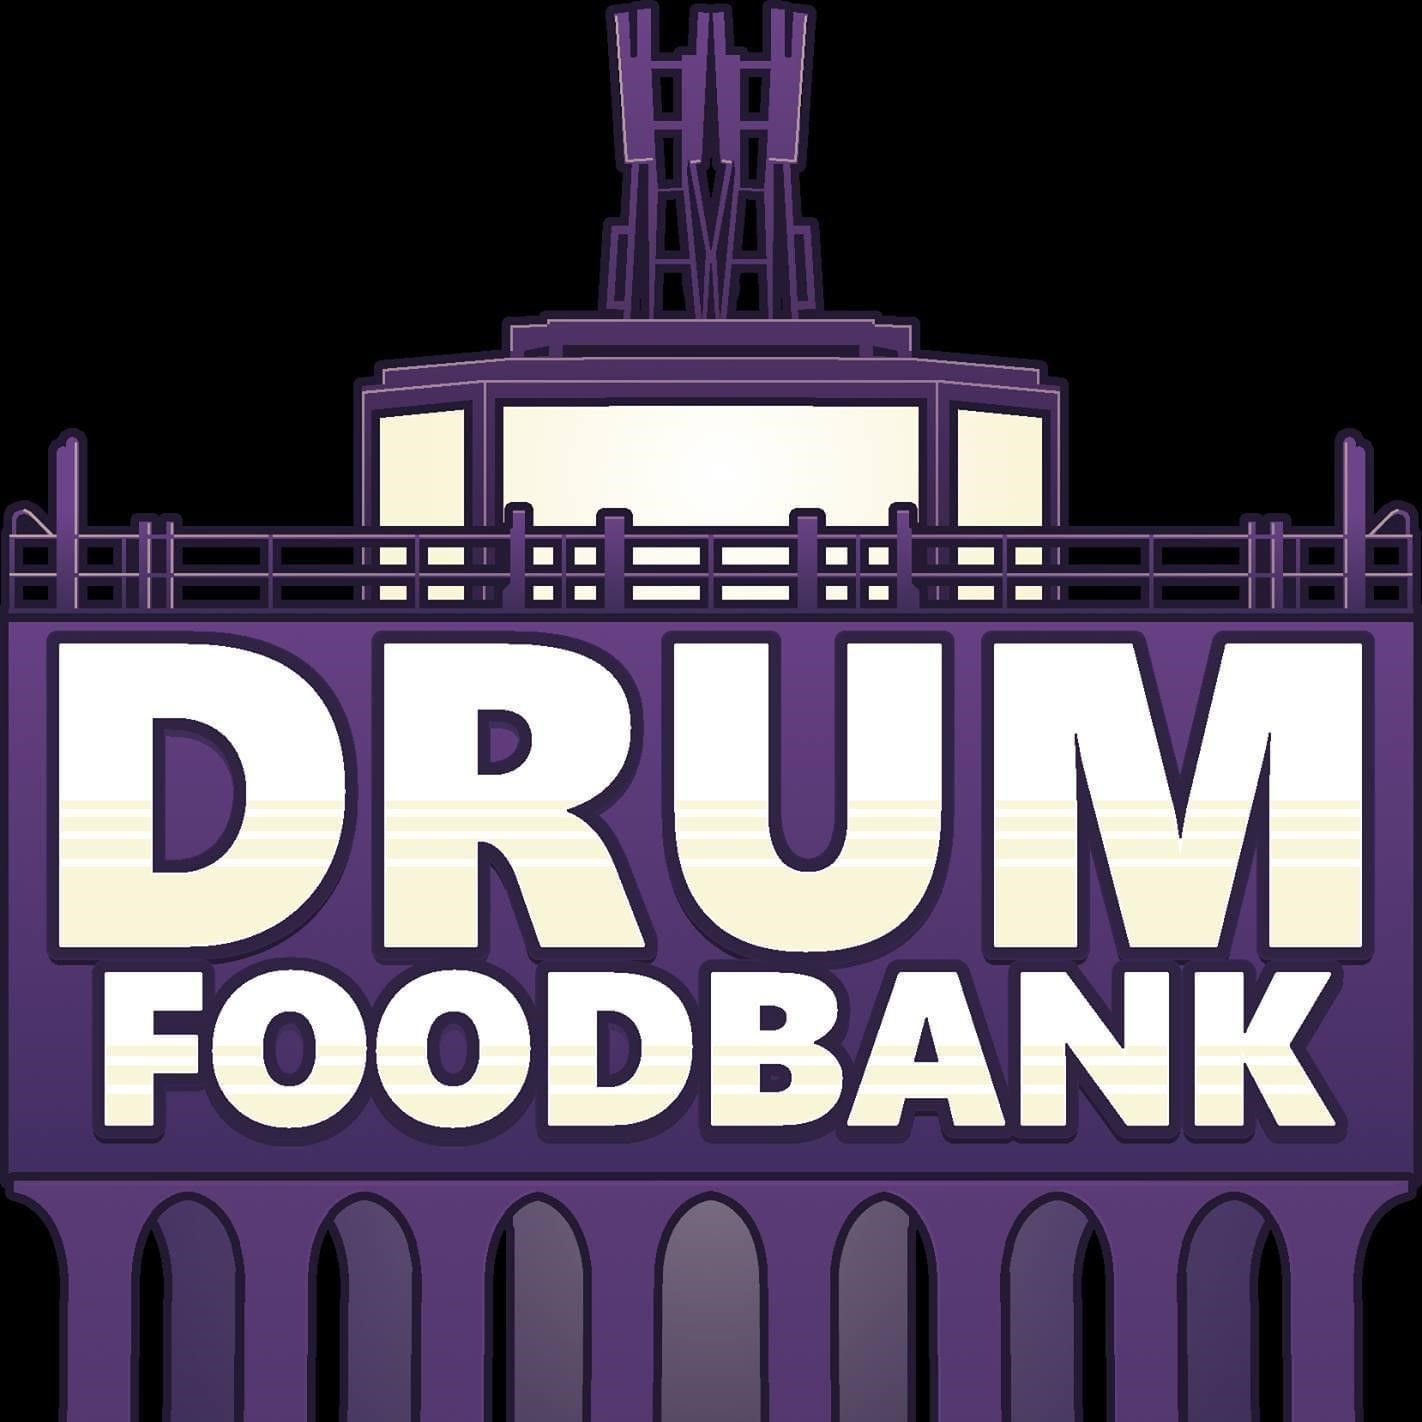 drumchapel foodbank